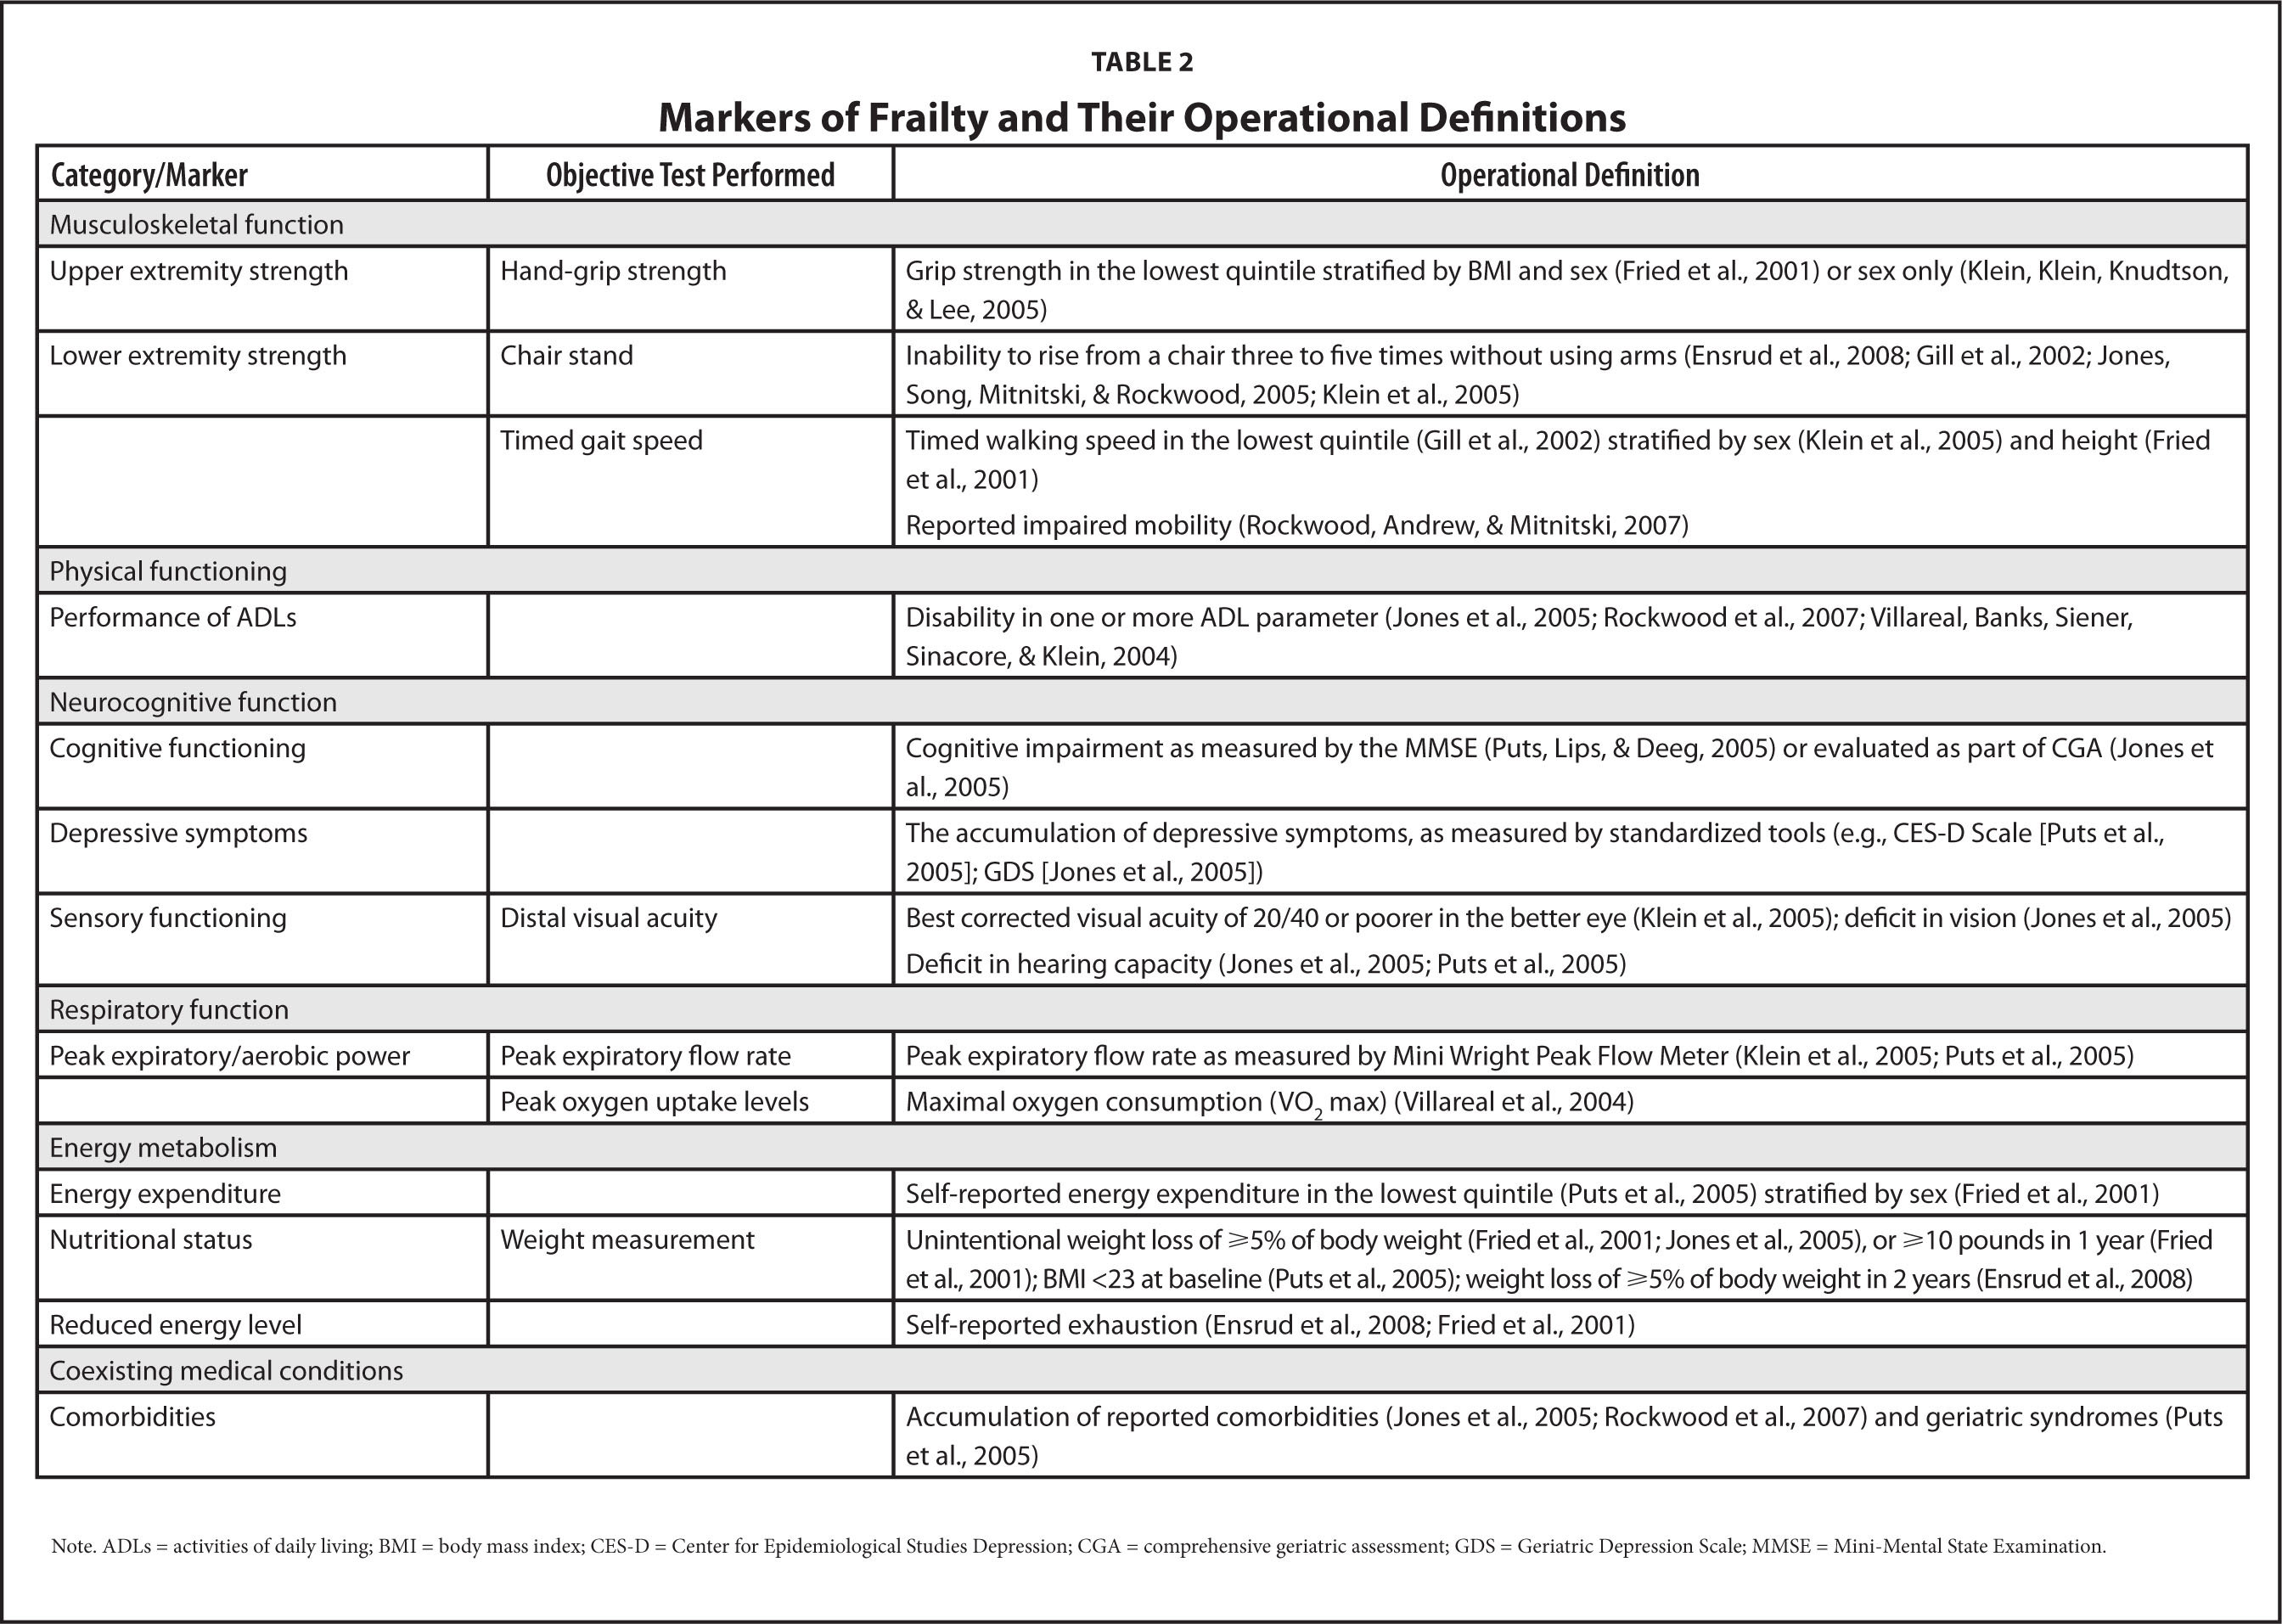 The Role of Emerging Information Technologies in Frailty Assessment